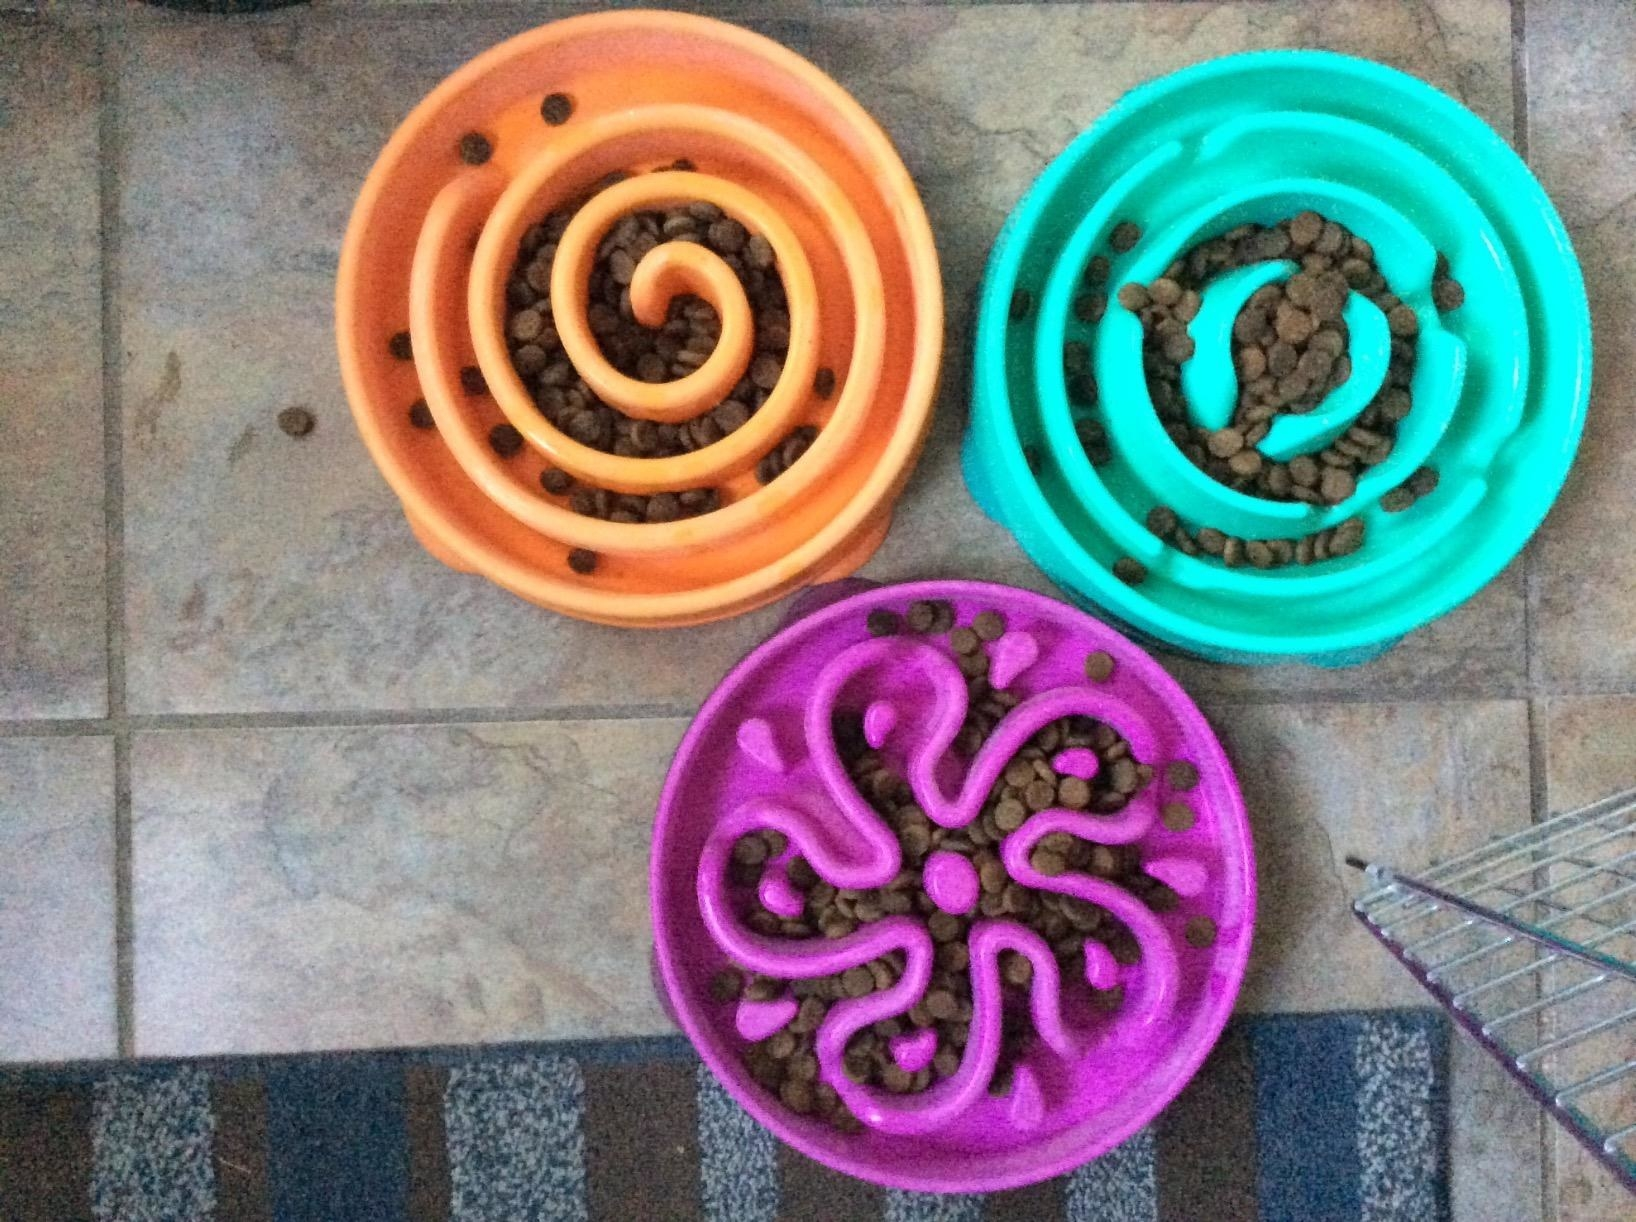 Three styles of bowls—flower, spiral, and maze